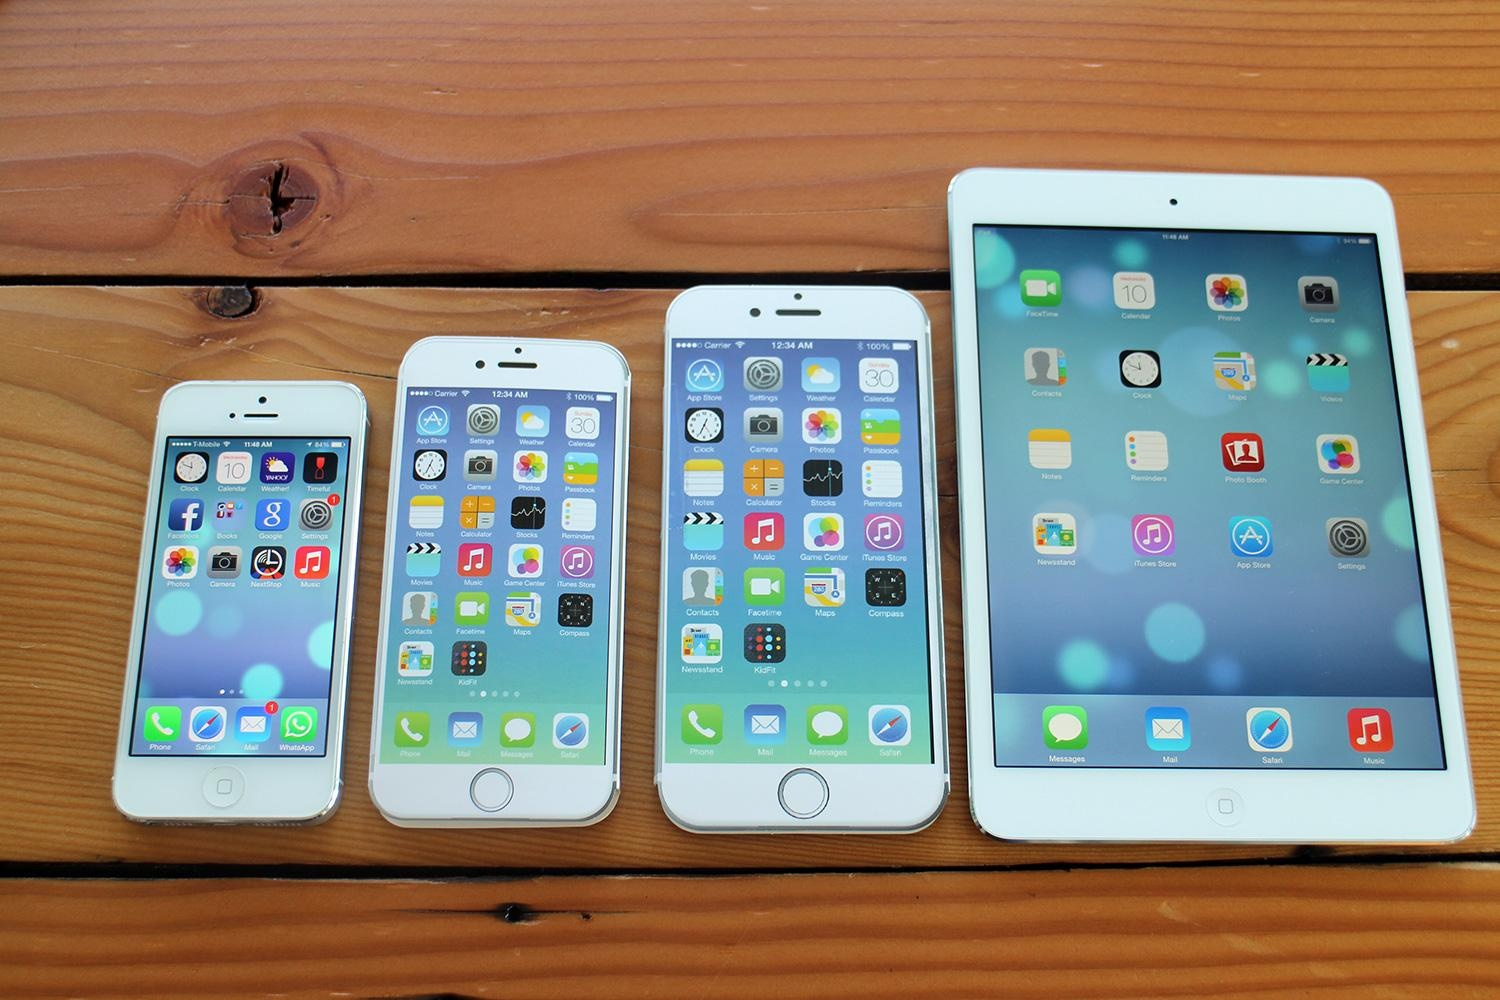 iphone 6 vs iphone 6 plus which should you choose